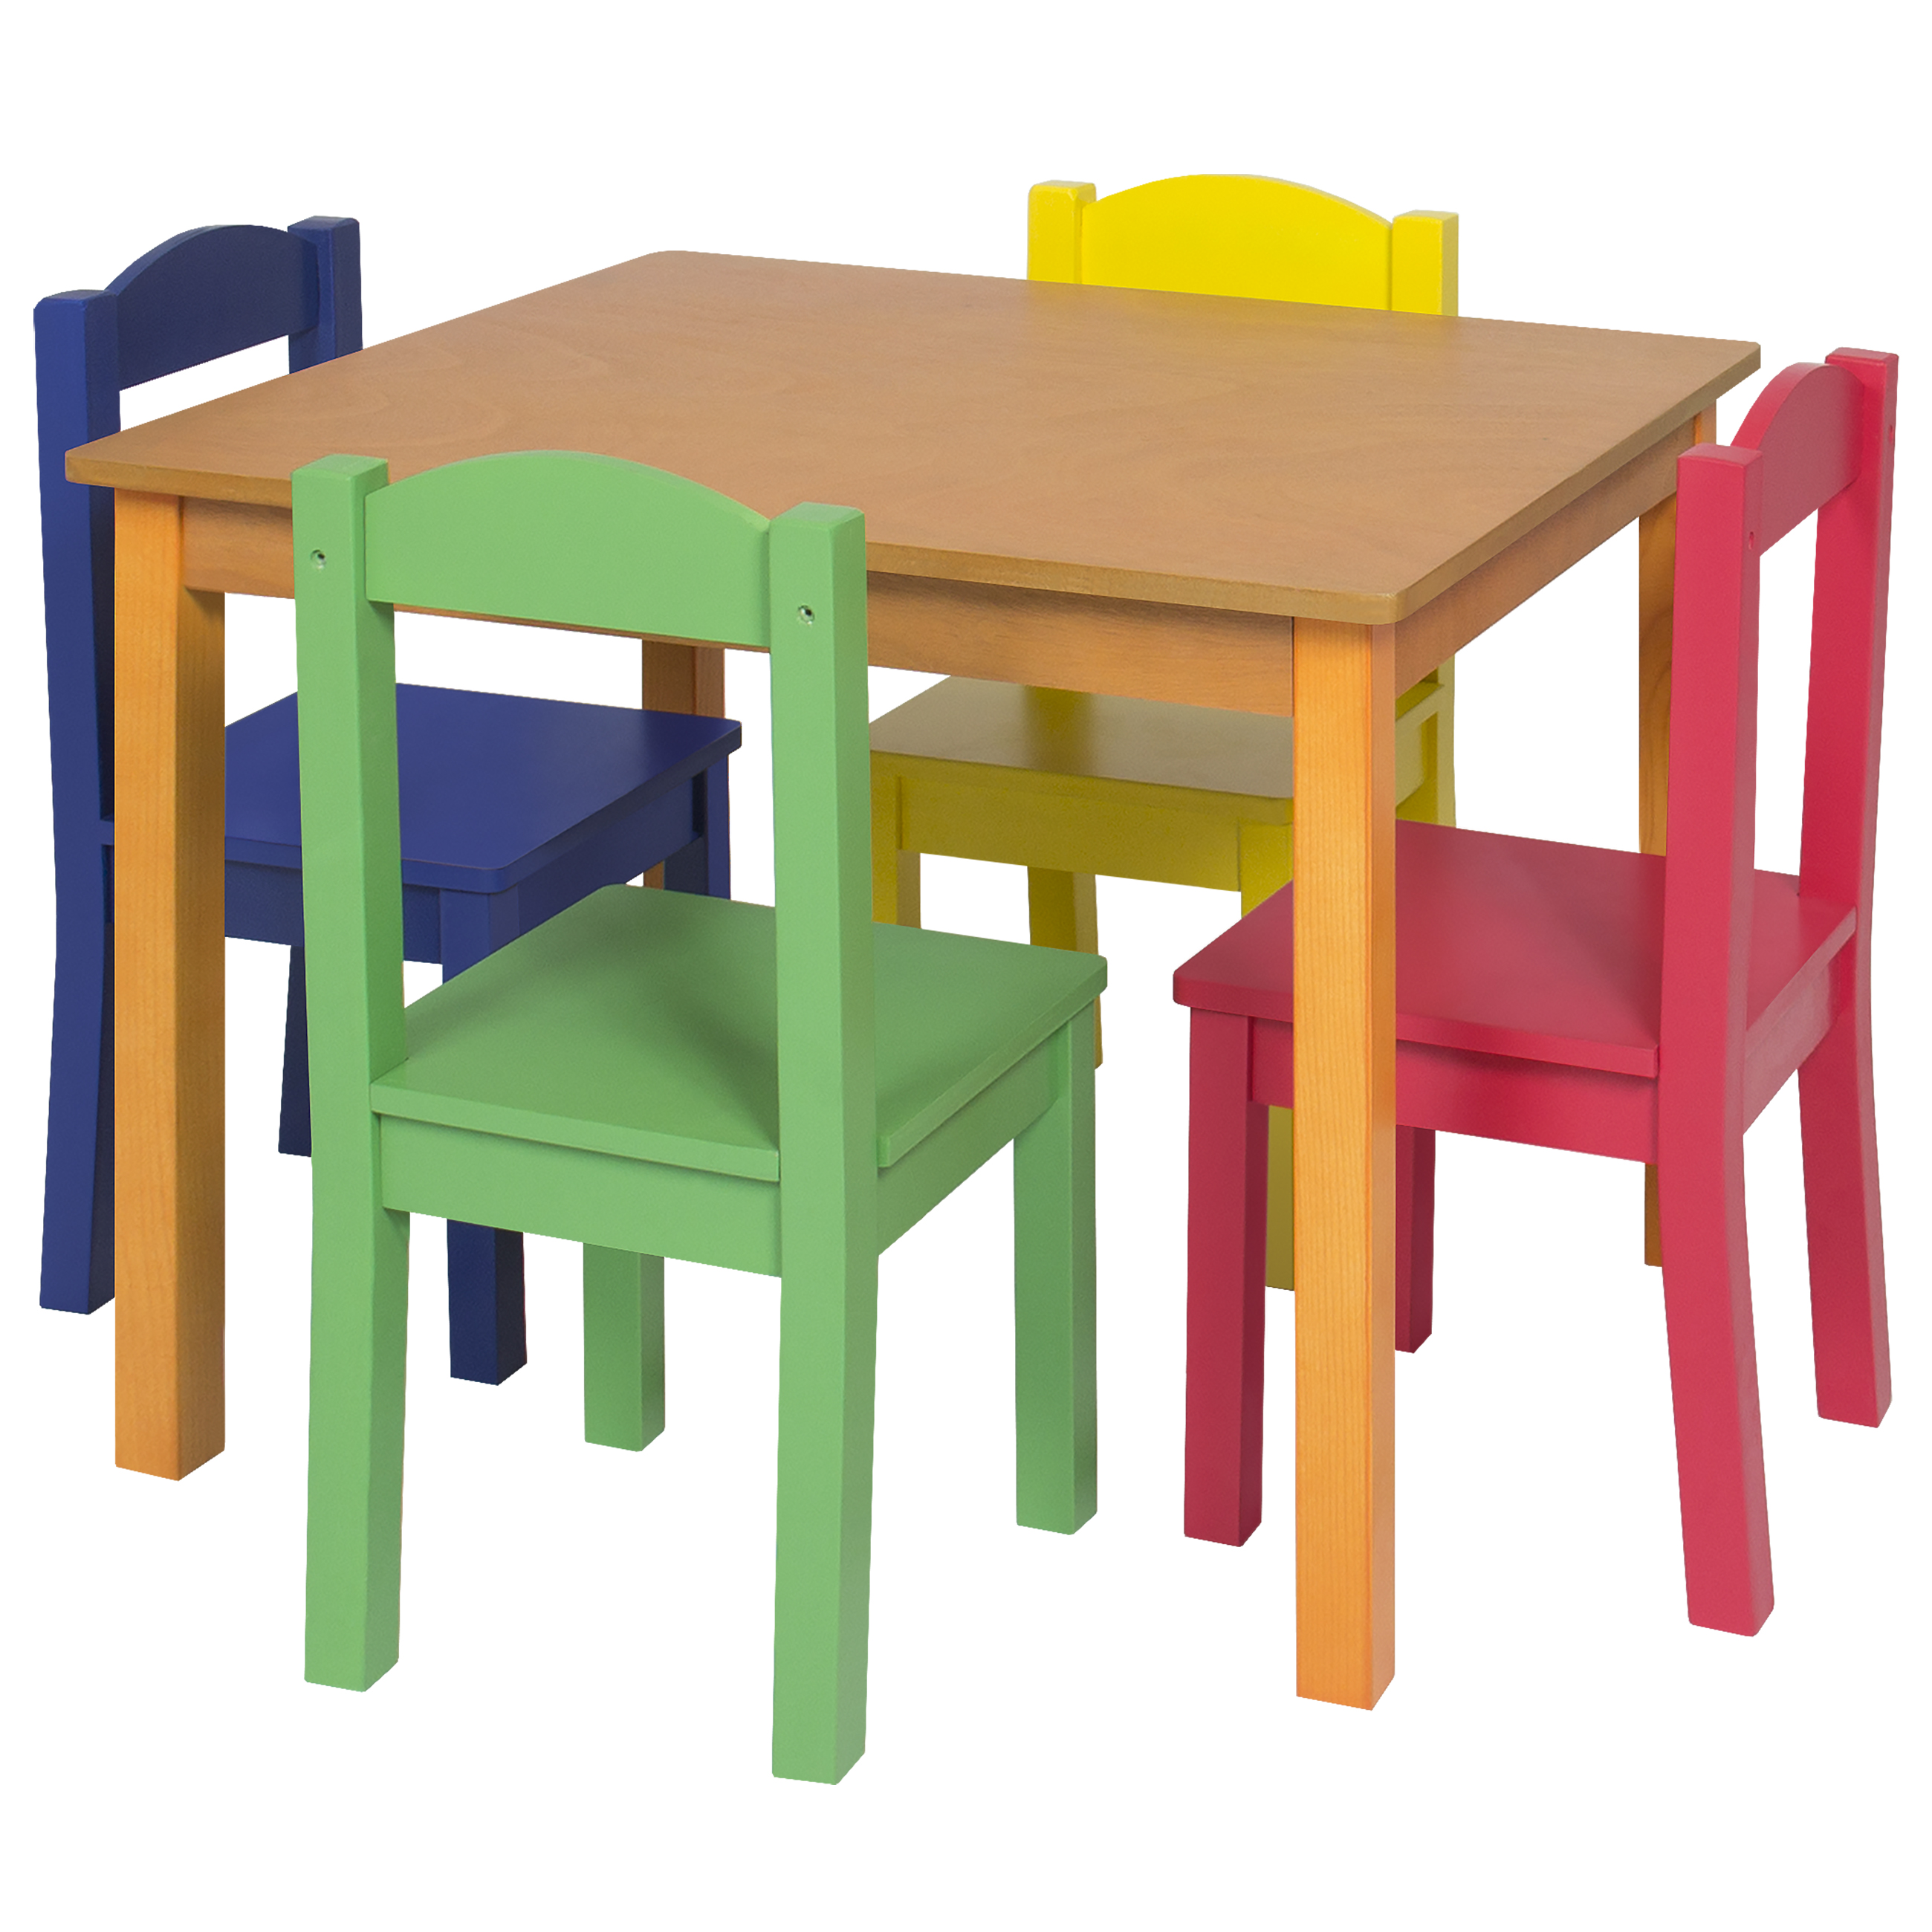 Wooden Table And Chairs Kids Wooden Table And 4 Chair Set Furniture Primary